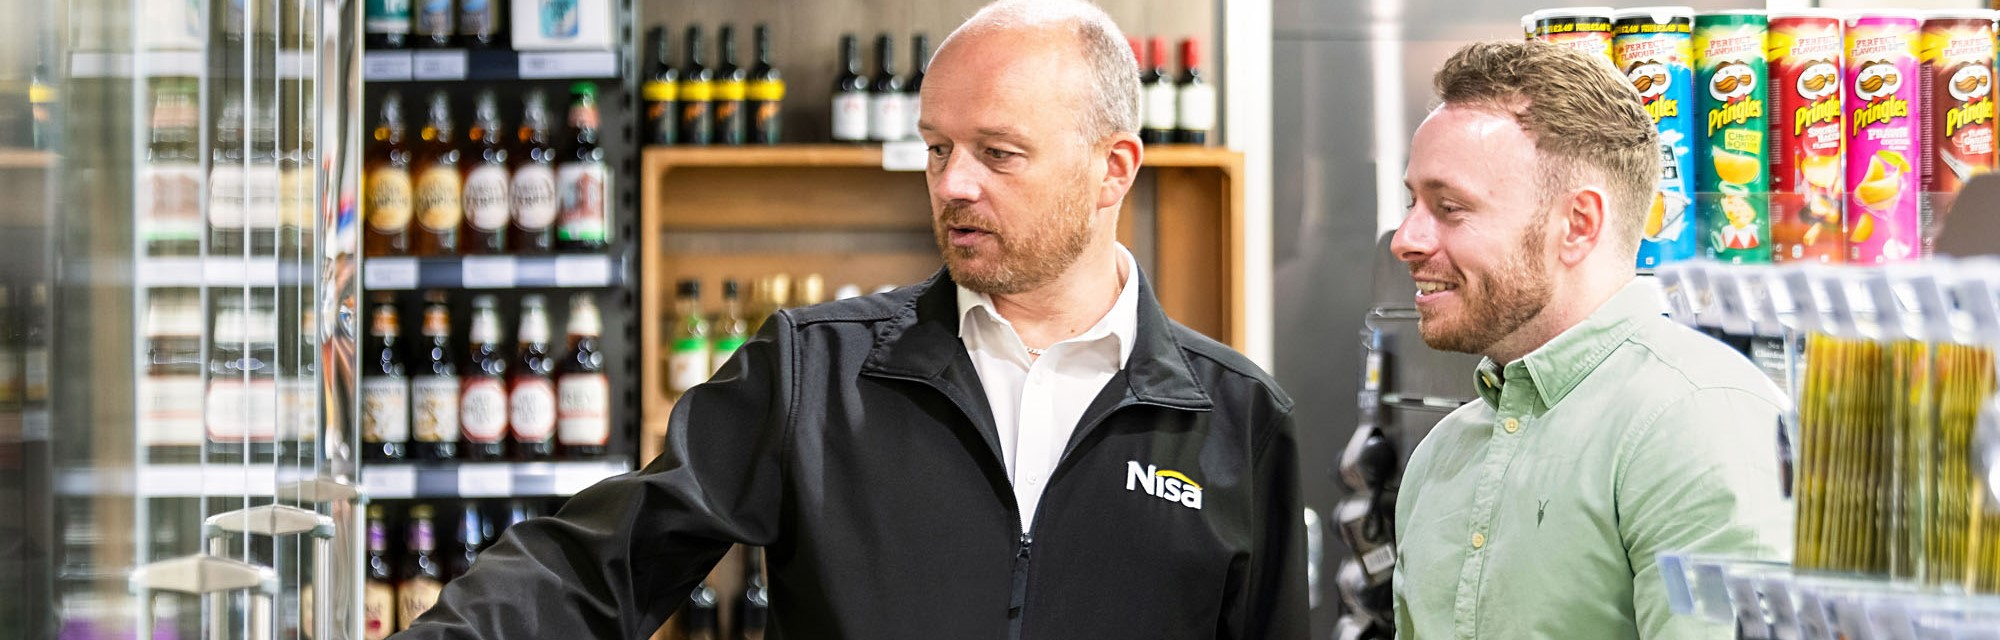 Header - Nisa Local Employees Working Together To Arrange Shelves